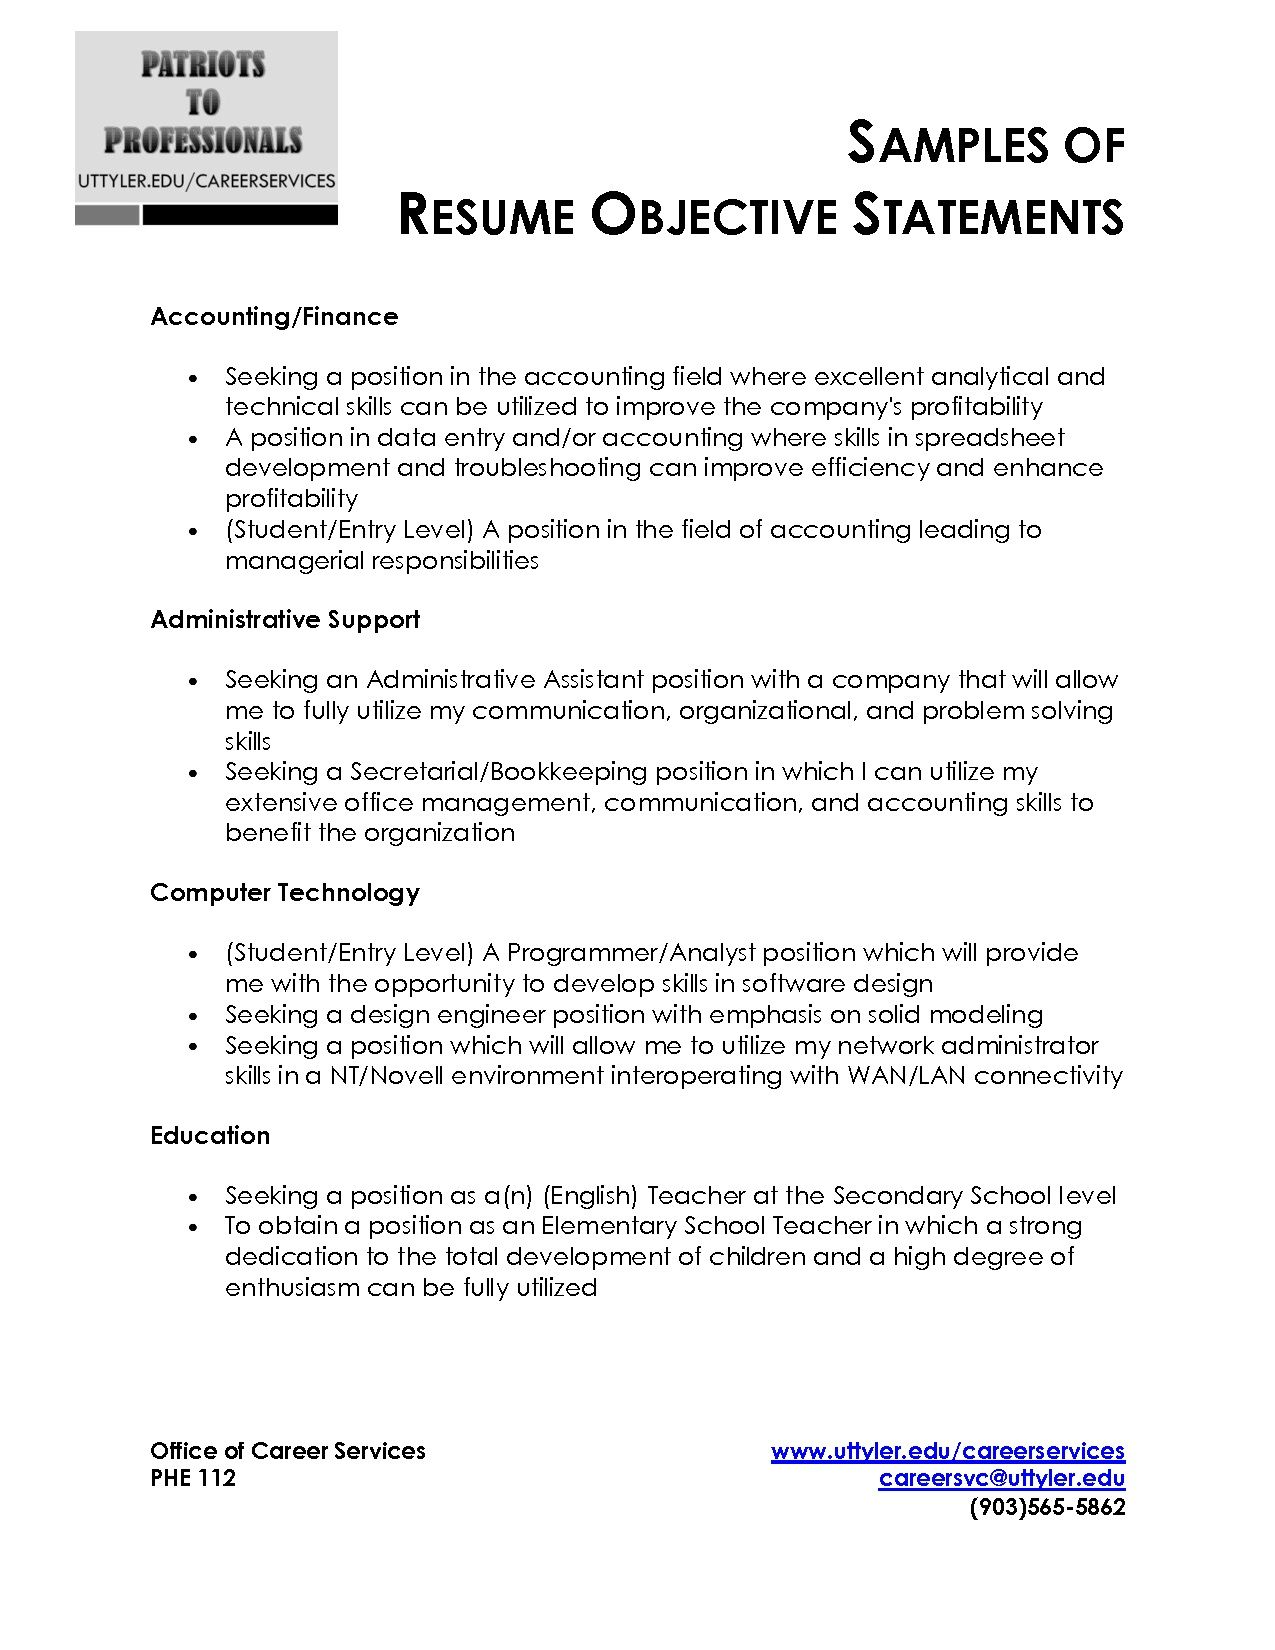 Strategy Resume Sample Resume Objective Statement Adsbygoogle Window